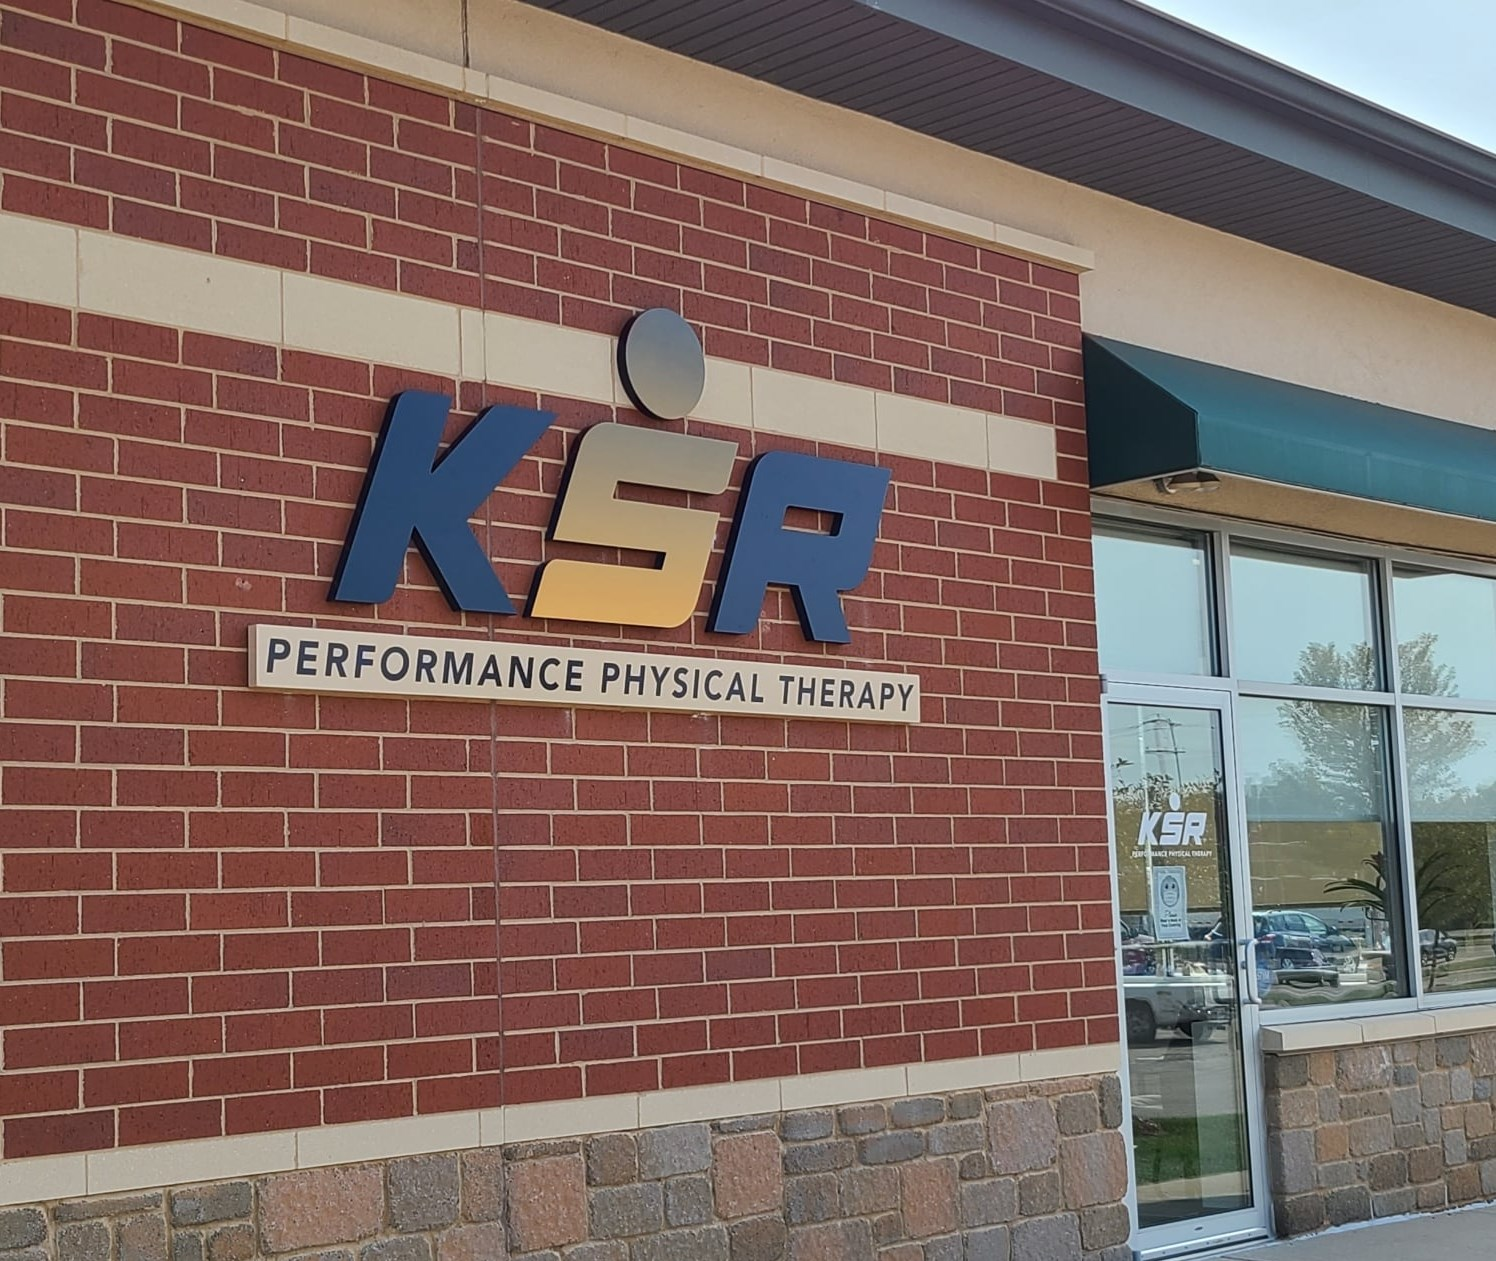 physical therapy in franklin wi, ksr physical therapy, franklin physical therapy